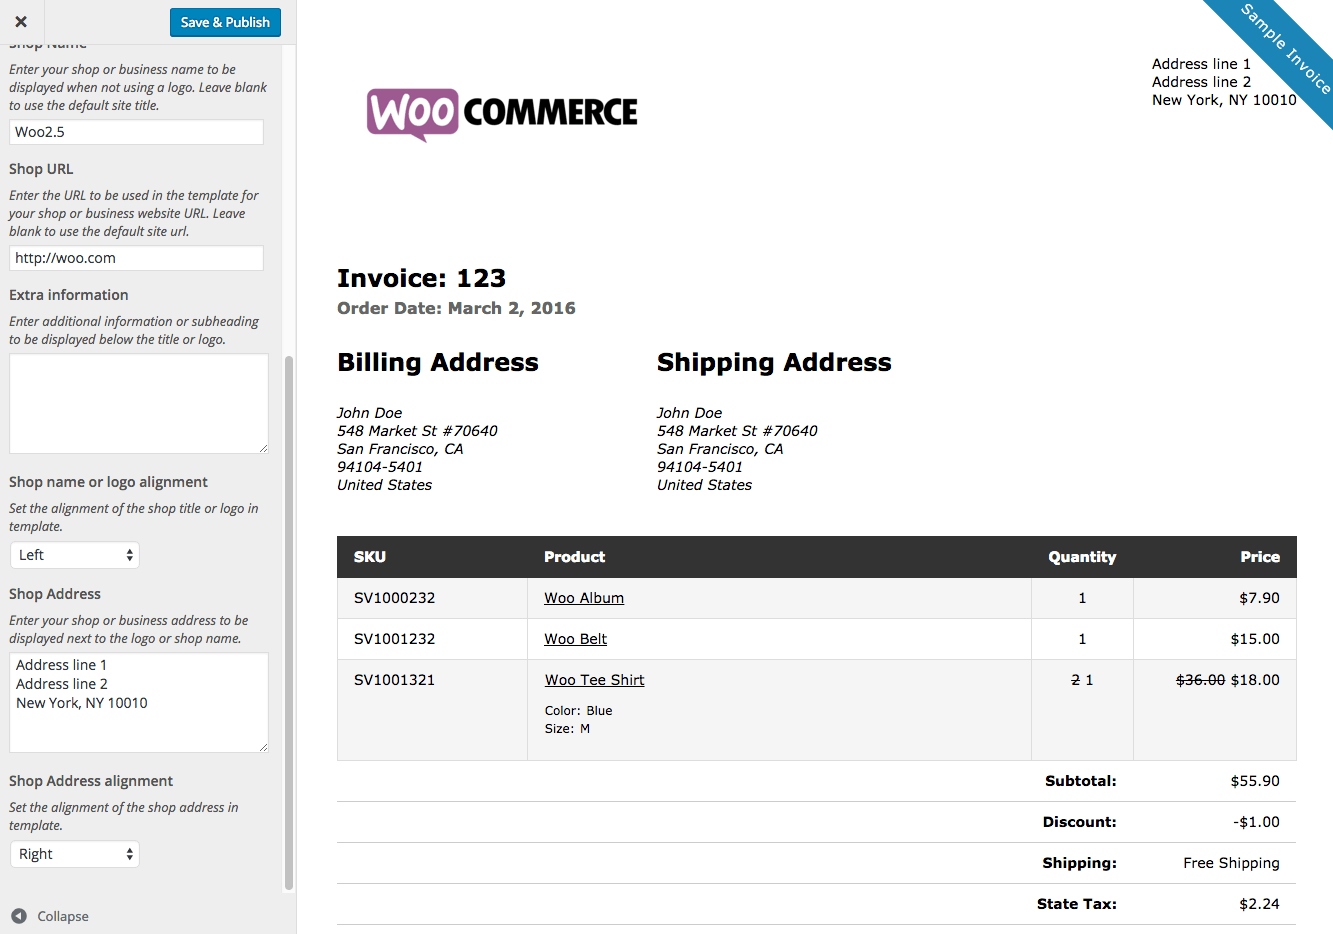 Ebitus  Gorgeous Woocommerce Print Invoices Amp Packing Lists  Woocommerce Docs With Interesting Woocommerce Print Invoices  Packing Lists Customizer With Cool Constructive Receipt Doctrine Also Depository Receipts In Addition Kohls Return Policy No Receipt And Receipt Pdf As Well As Credit Card Receipt Template Additionally Avis Receipts From Docswoocommercecom With Ebitus  Interesting Woocommerce Print Invoices Amp Packing Lists  Woocommerce Docs With Cool Woocommerce Print Invoices  Packing Lists Customizer And Gorgeous Constructive Receipt Doctrine Also Depository Receipts In Addition Kohls Return Policy No Receipt From Docswoocommercecom